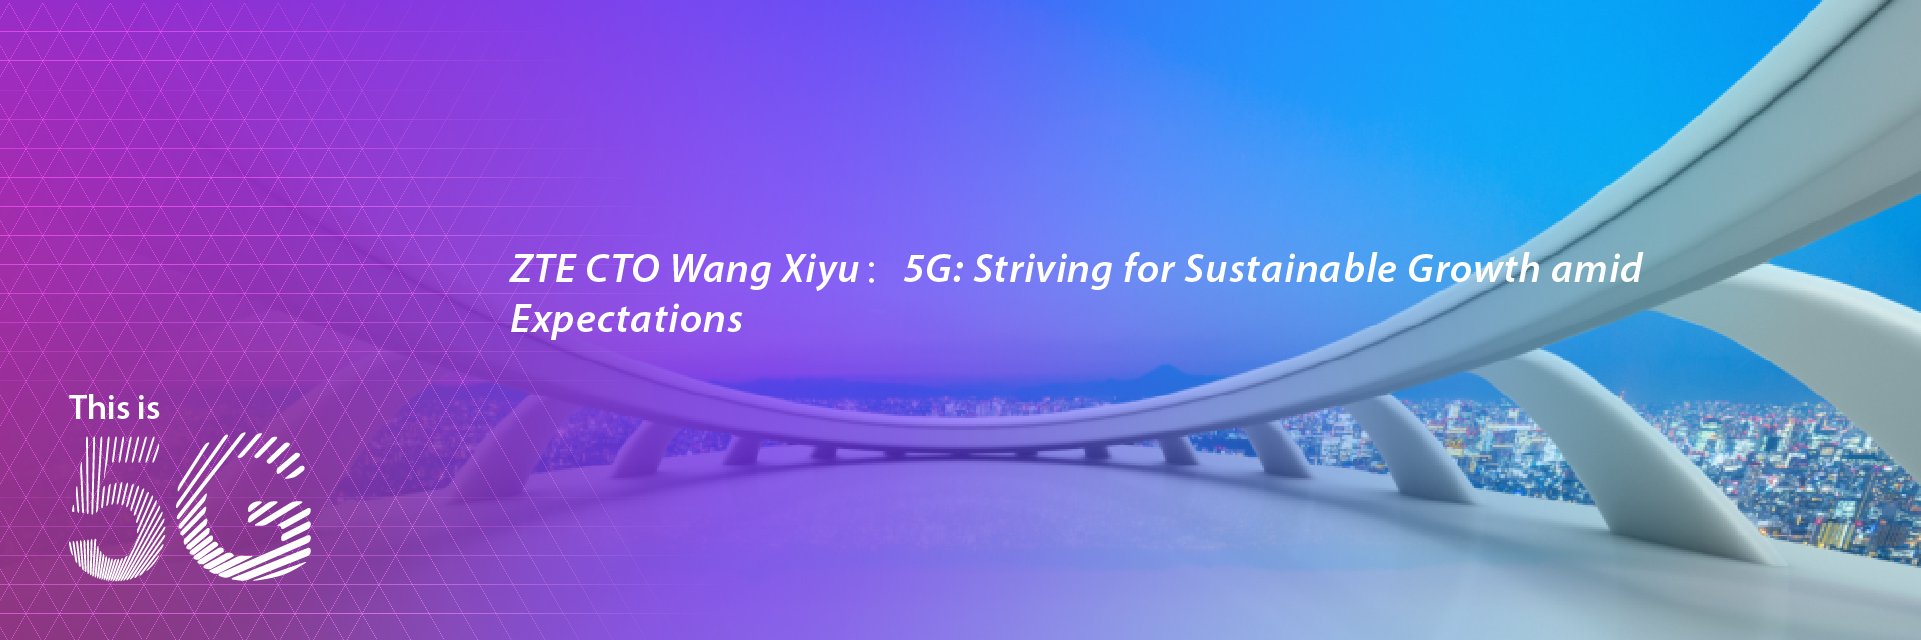 ZTE CTO Wang Xiyu: 5G:Striving for Sustainable Growth amid Expectations